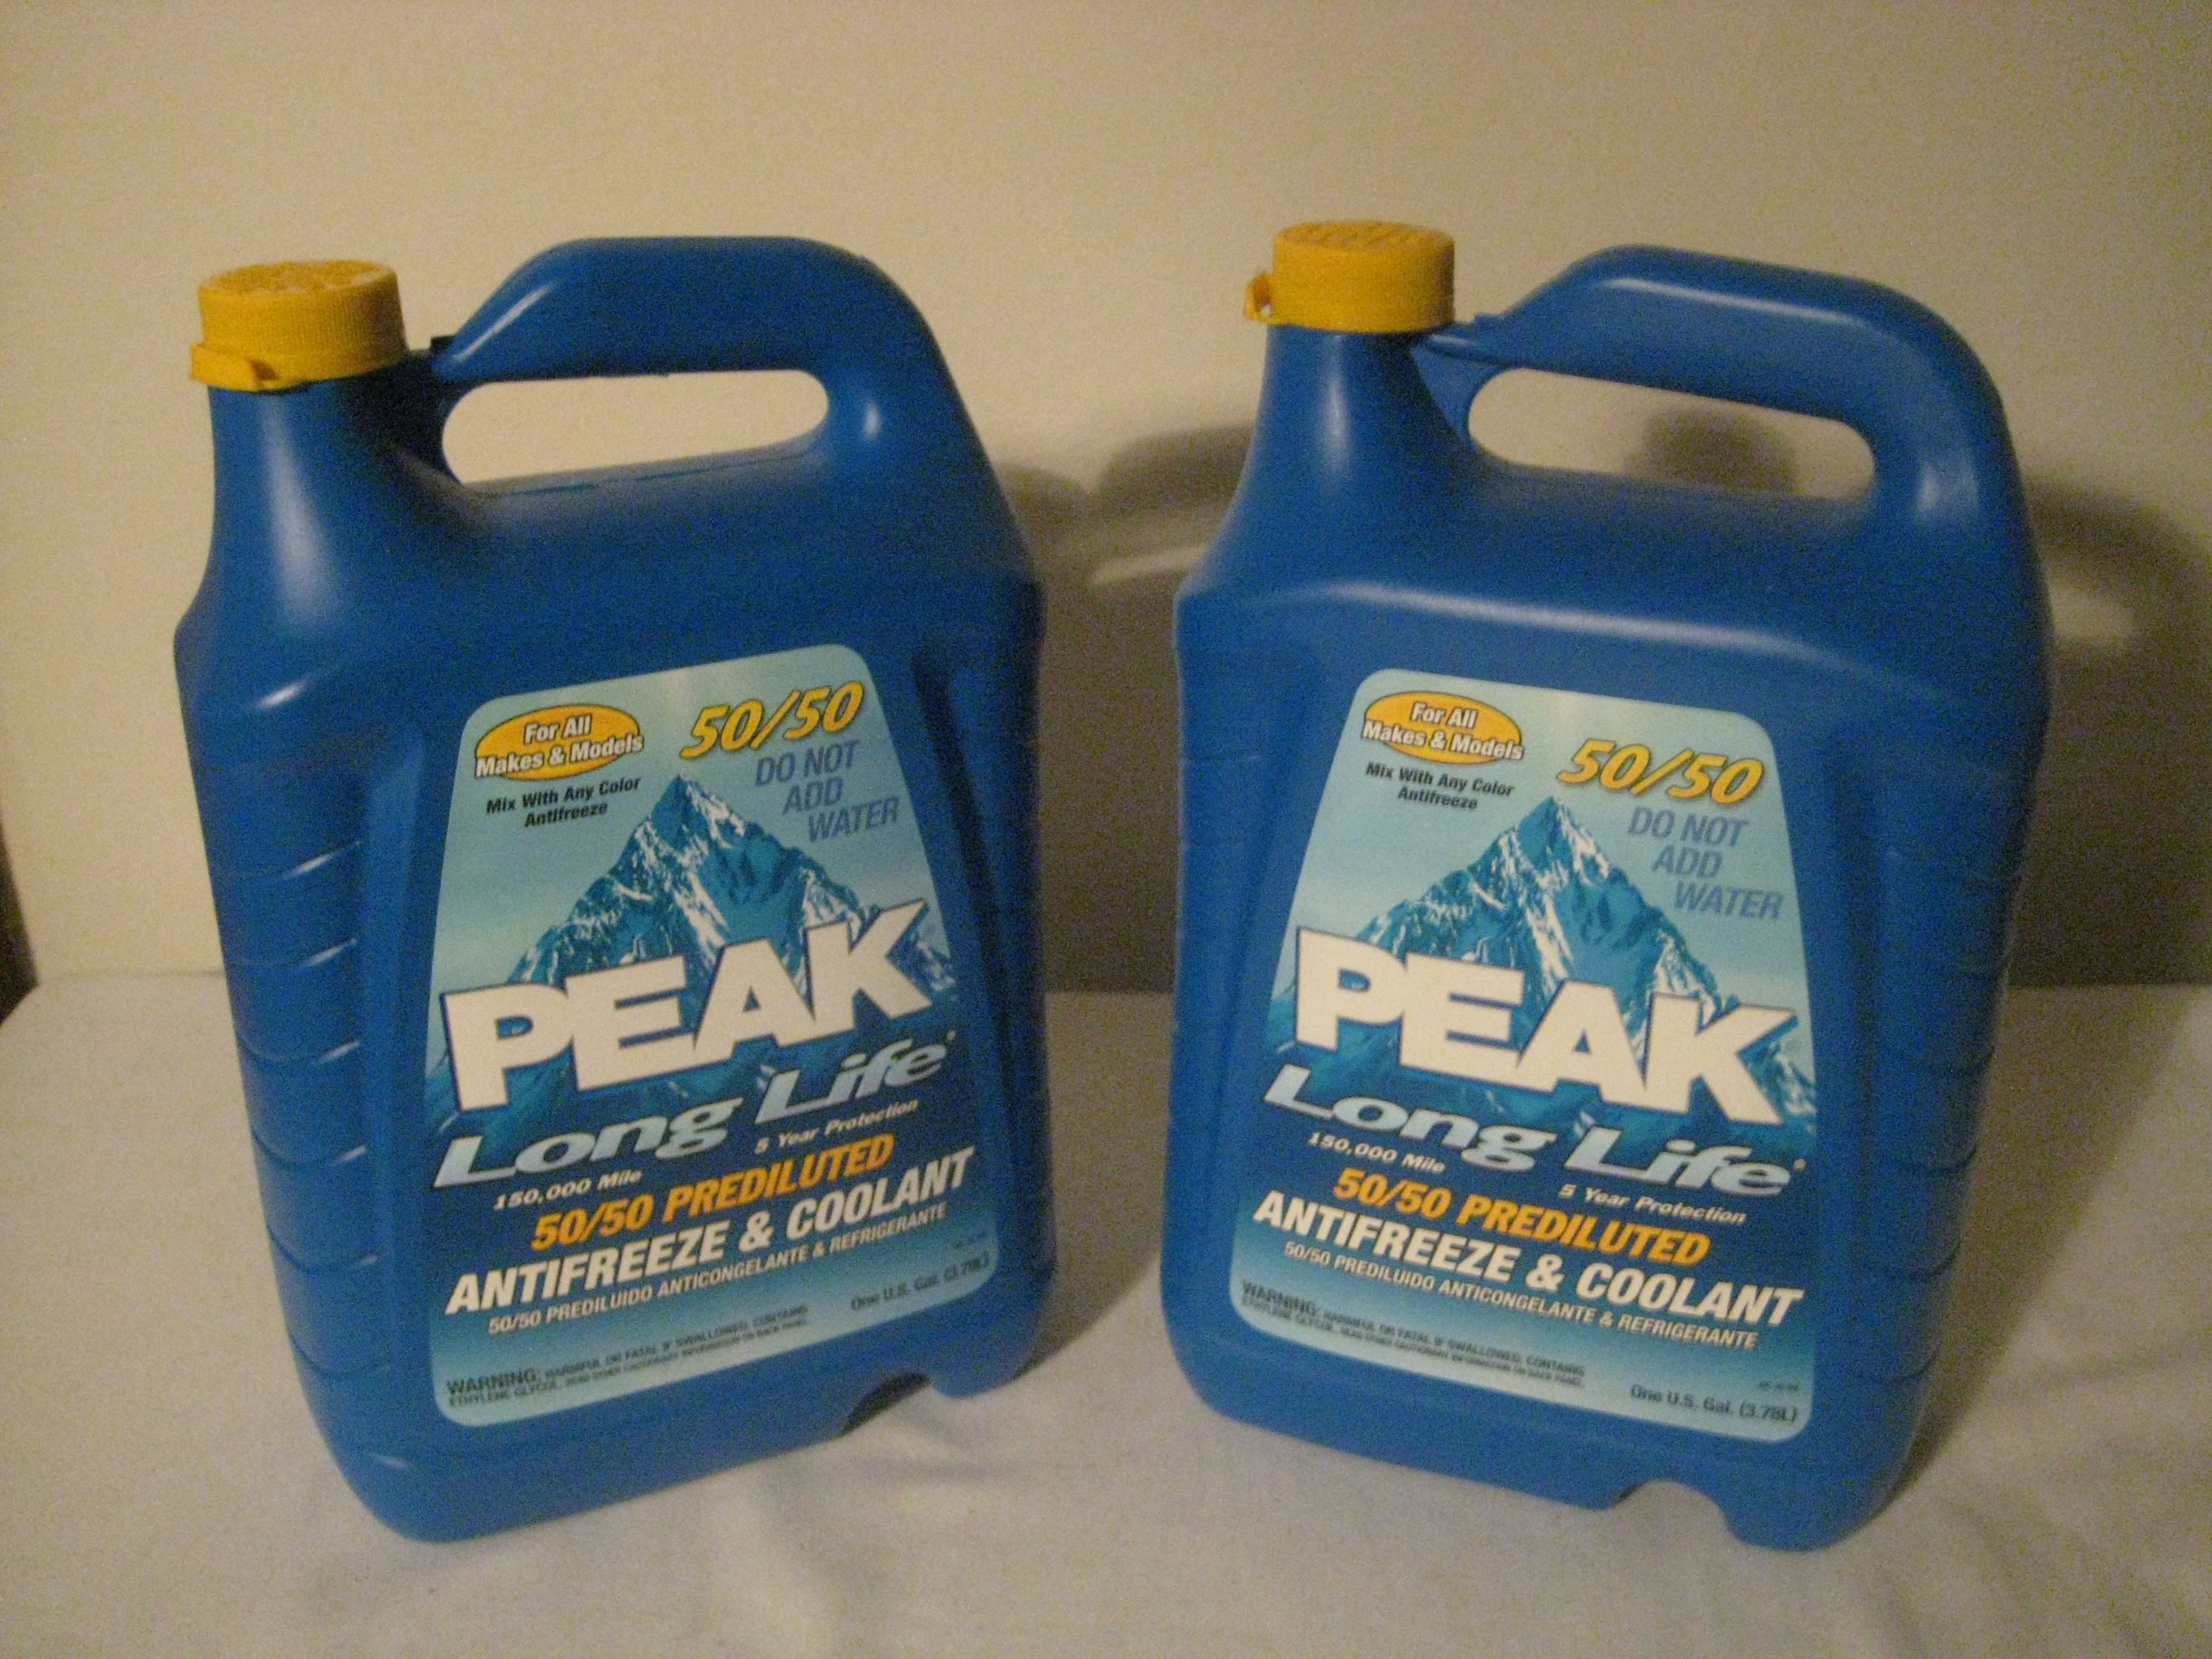 Peak Long Life Old World Automotive Product Gallon 50/50 Antifreeze & Coolant (2 pack) by Old World Automotive Product